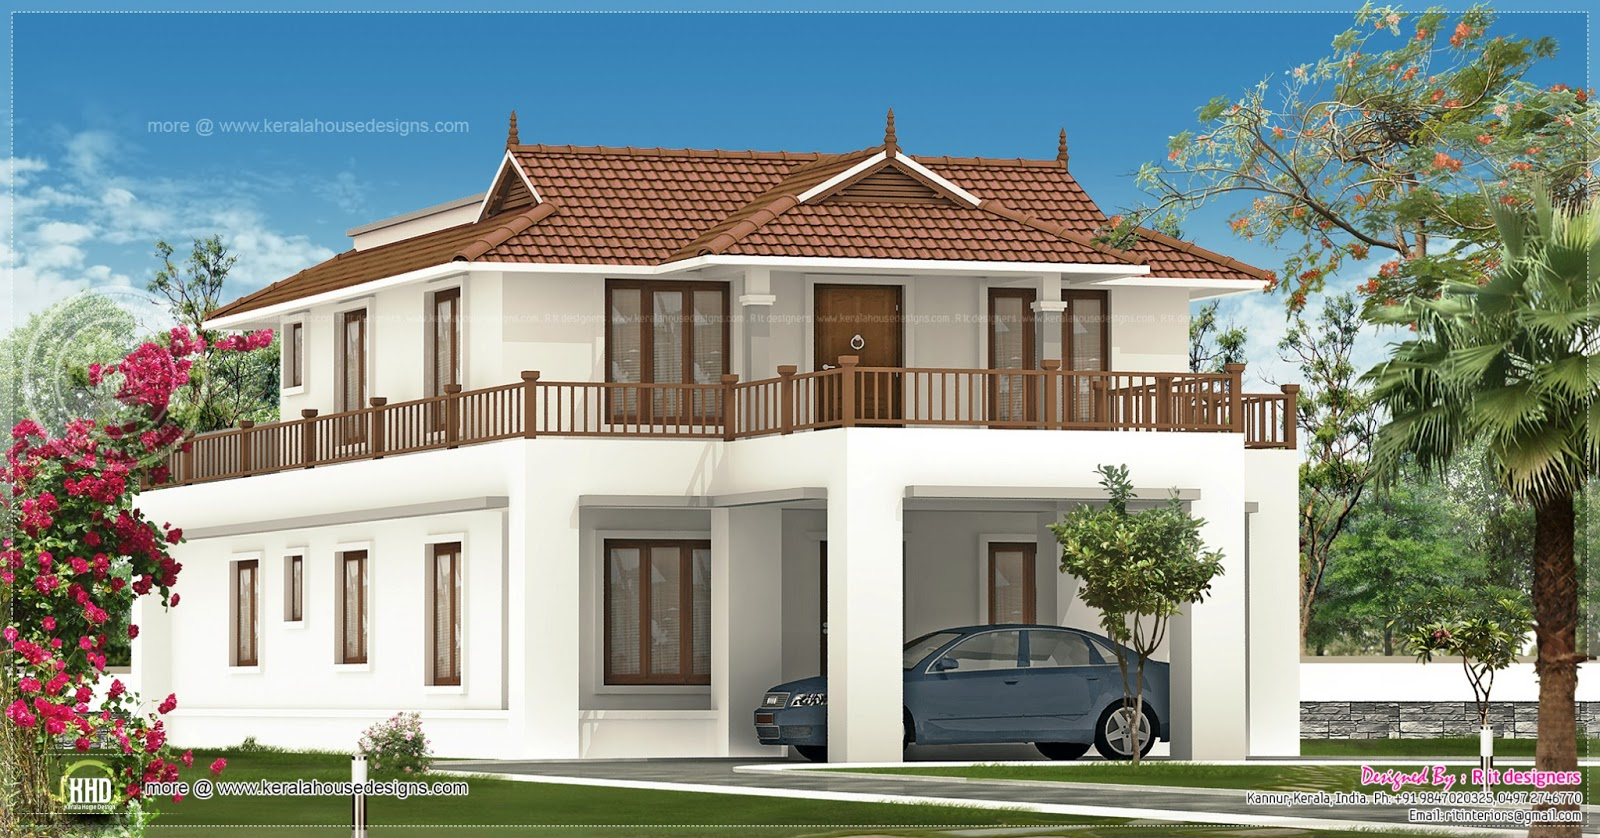 2820 square feet house exterior design home kerala plans Home outside design